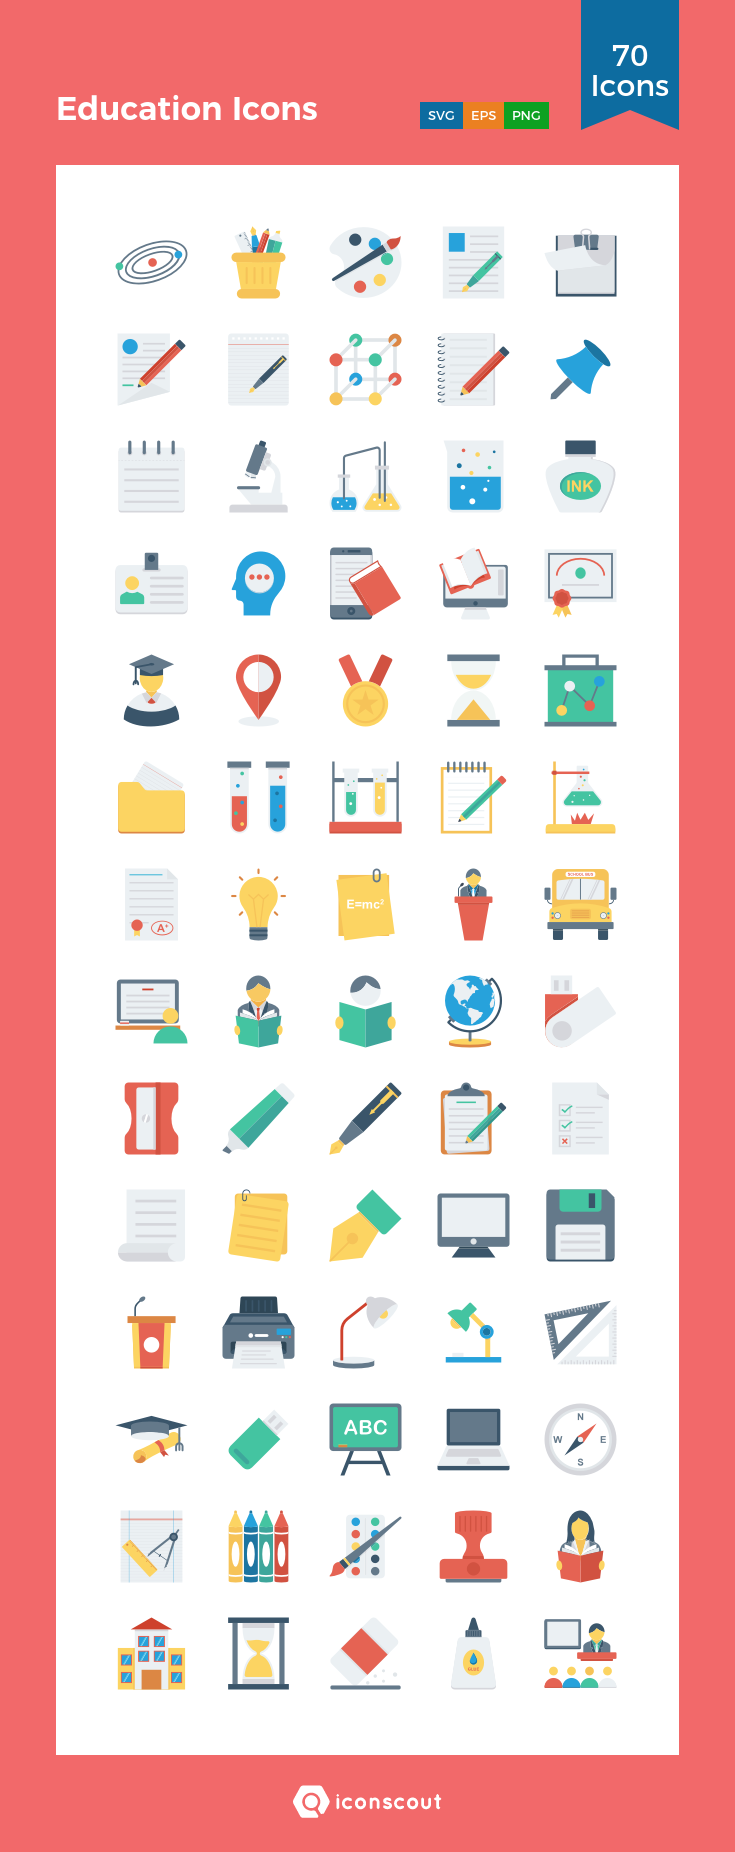 Download Education Icons Icon pack Available in SVG, PNG